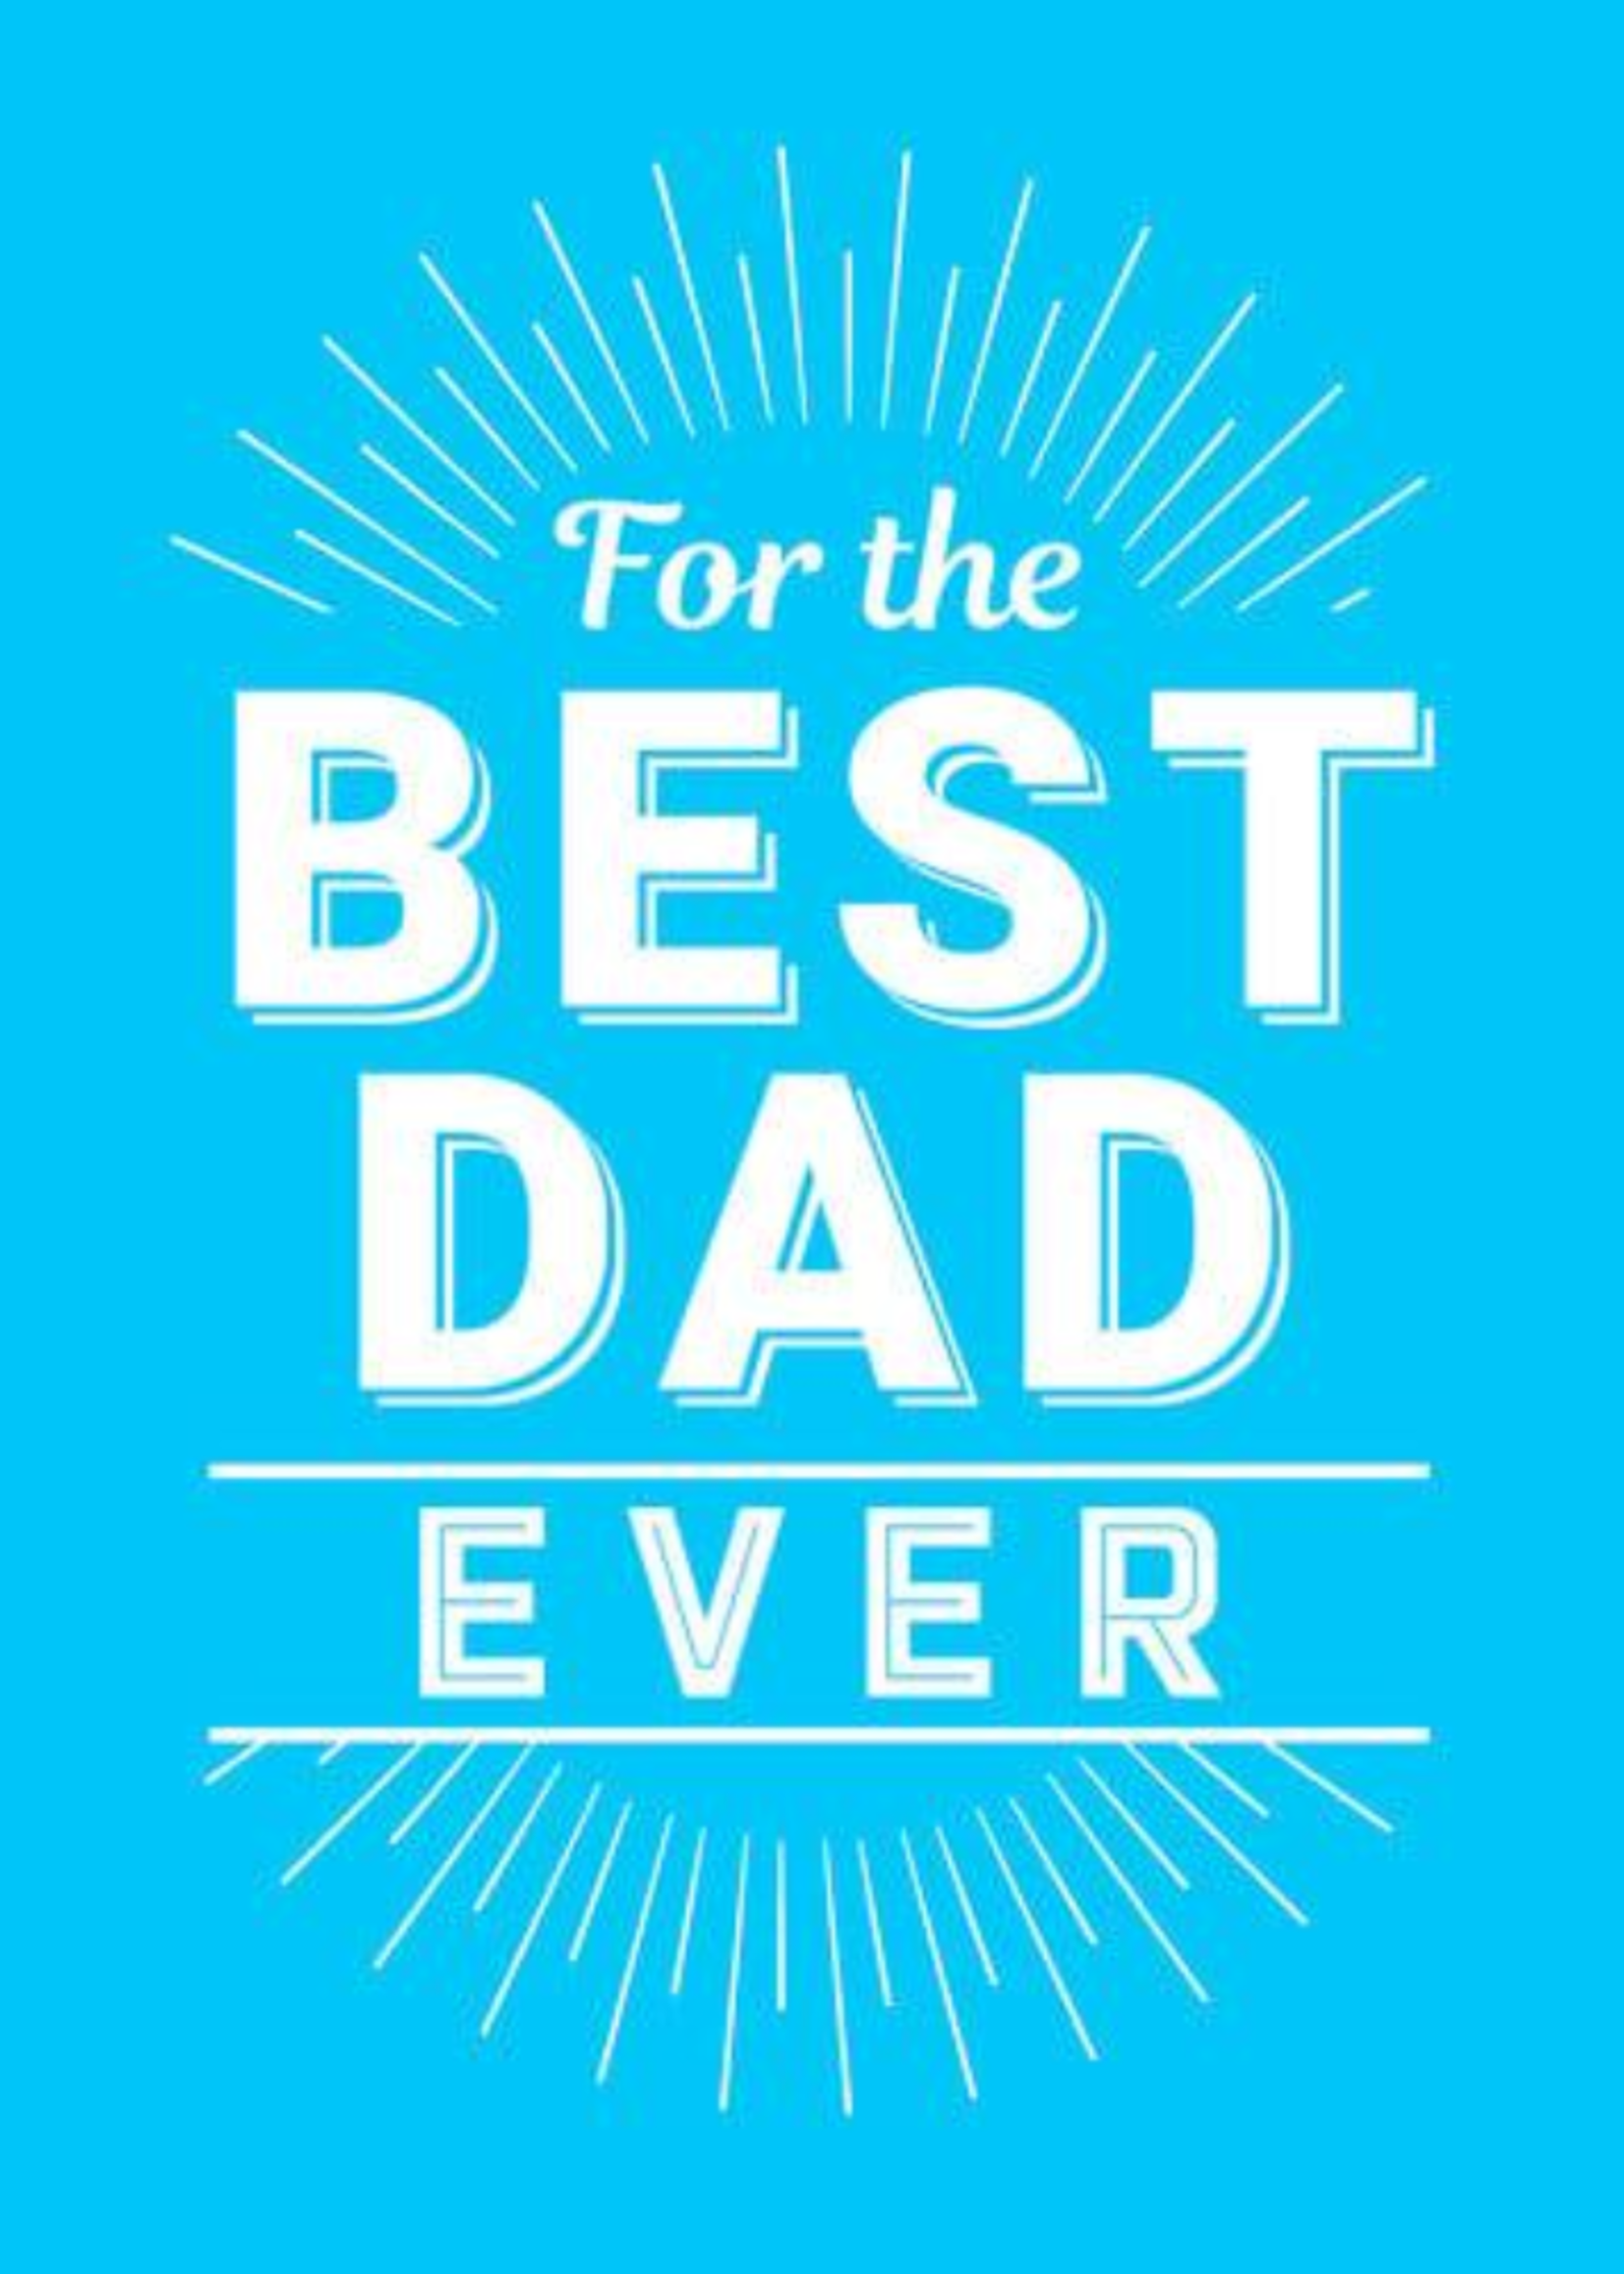 hachette book group for the best dad